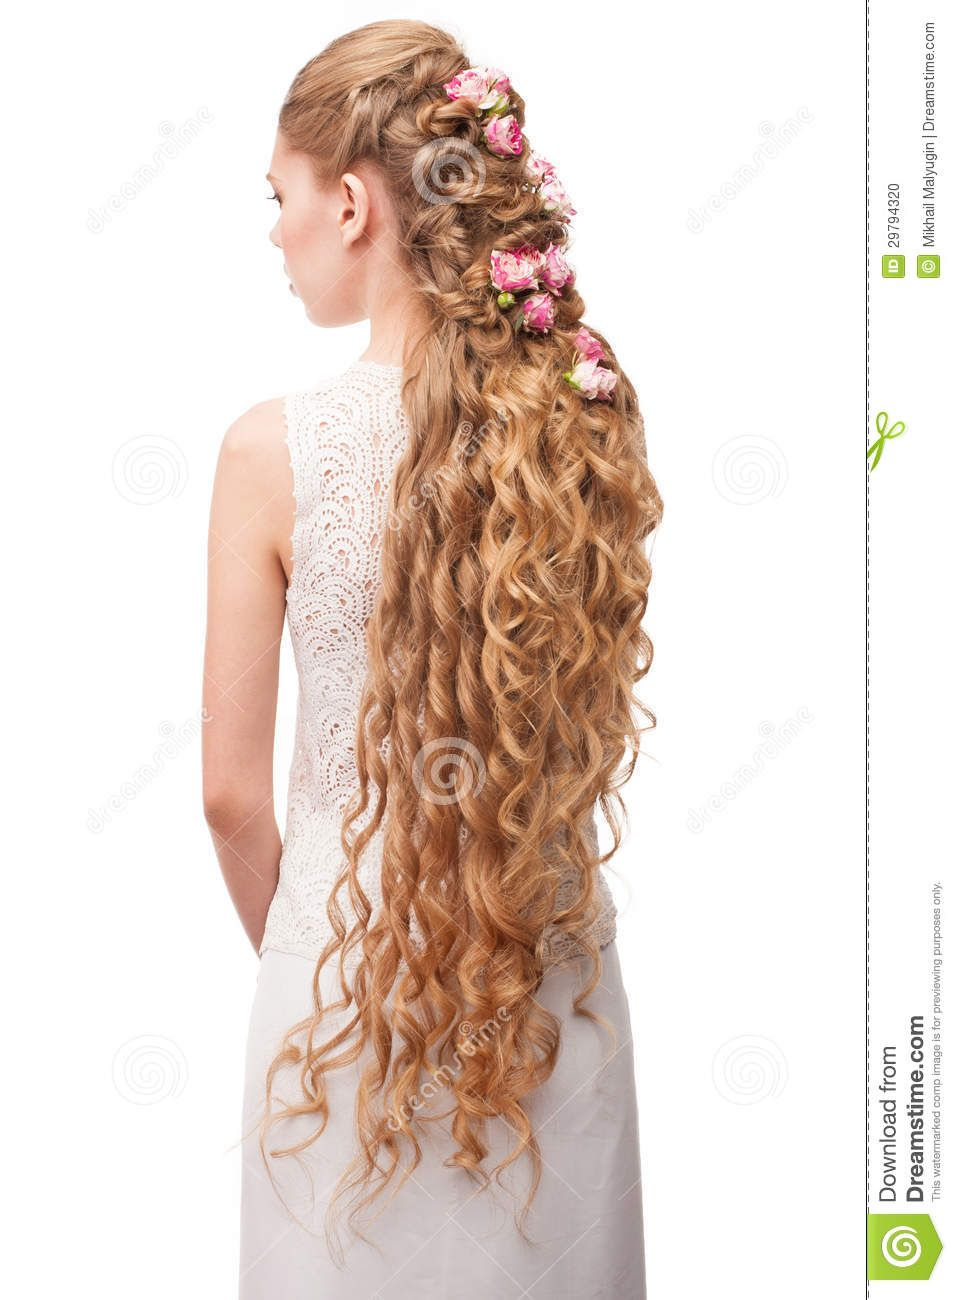 Just lovely long long beautiful hair pinterest bridal photo about blond hair beautiful caucasian woman with curly long hair bridal hairstyle decorated by flowers 29794320 izmirmasajfo Gallery